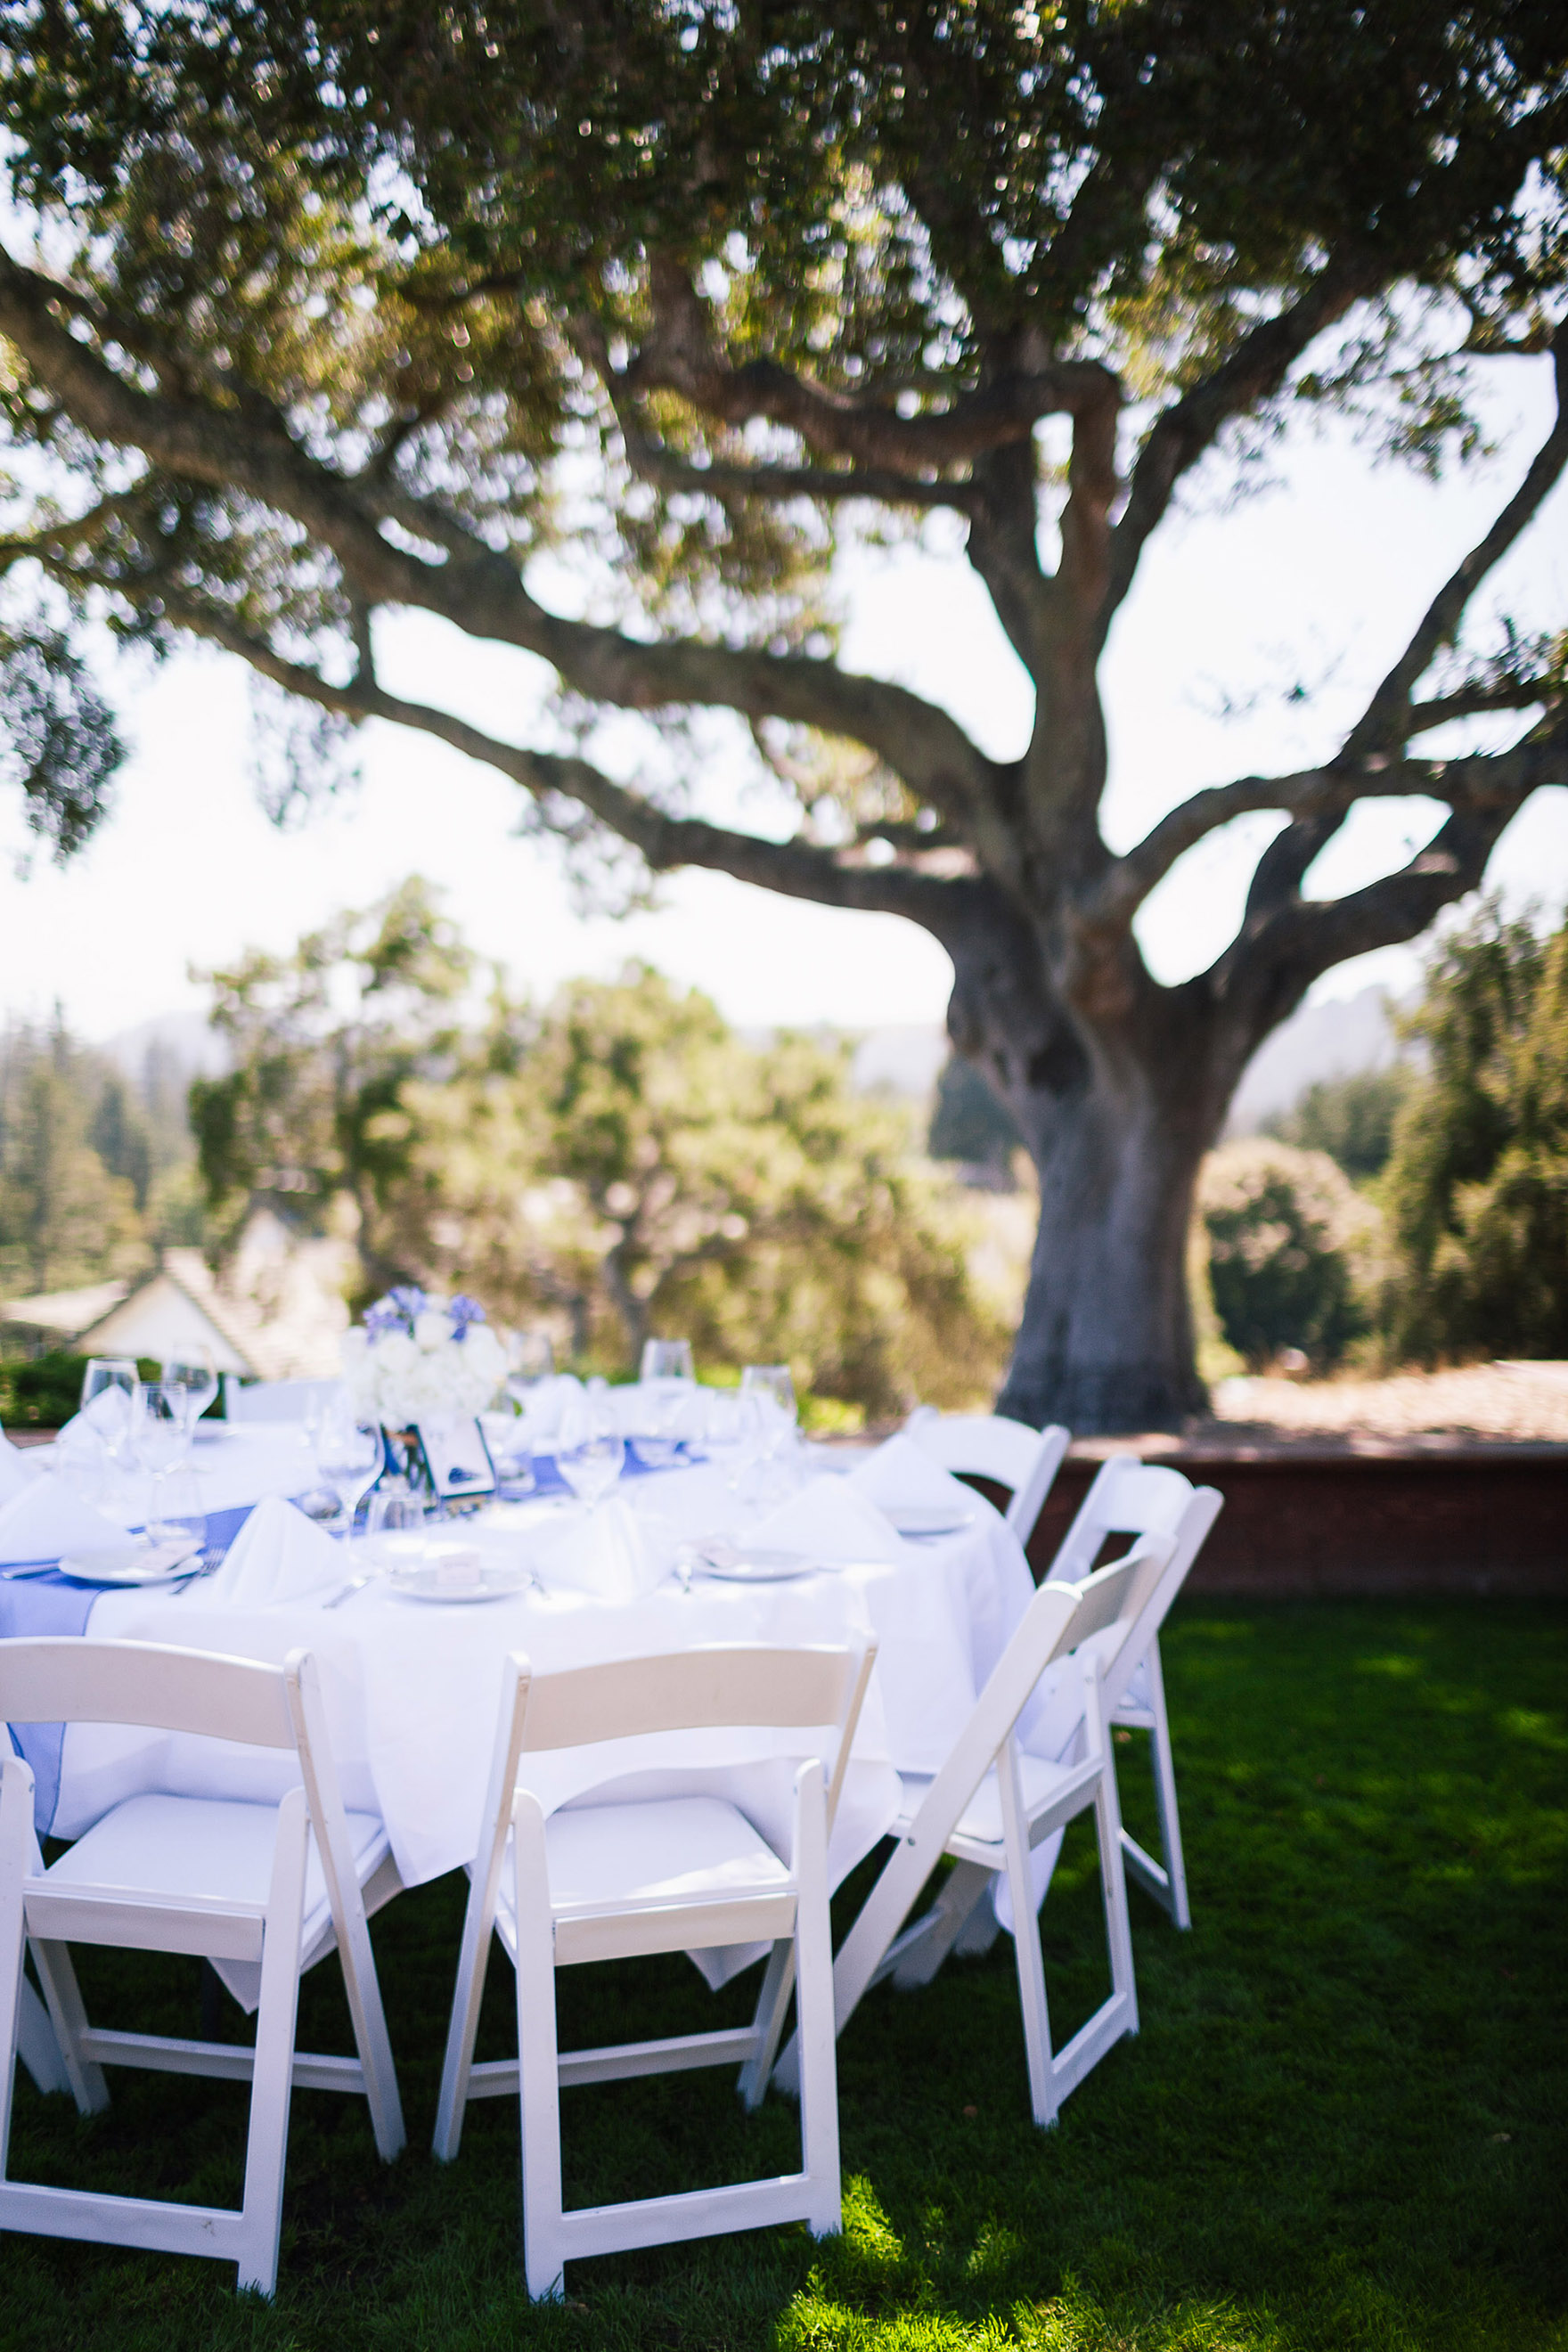 decorated tables for an exciting hollins house reception sit over the monterey bay vista with decor and details and diy flowers floral bouquets under the green oak trees at the pasatiempo golf course at the bride and groom newlywed hollins house wedding the perfect santa cruz wedding venue